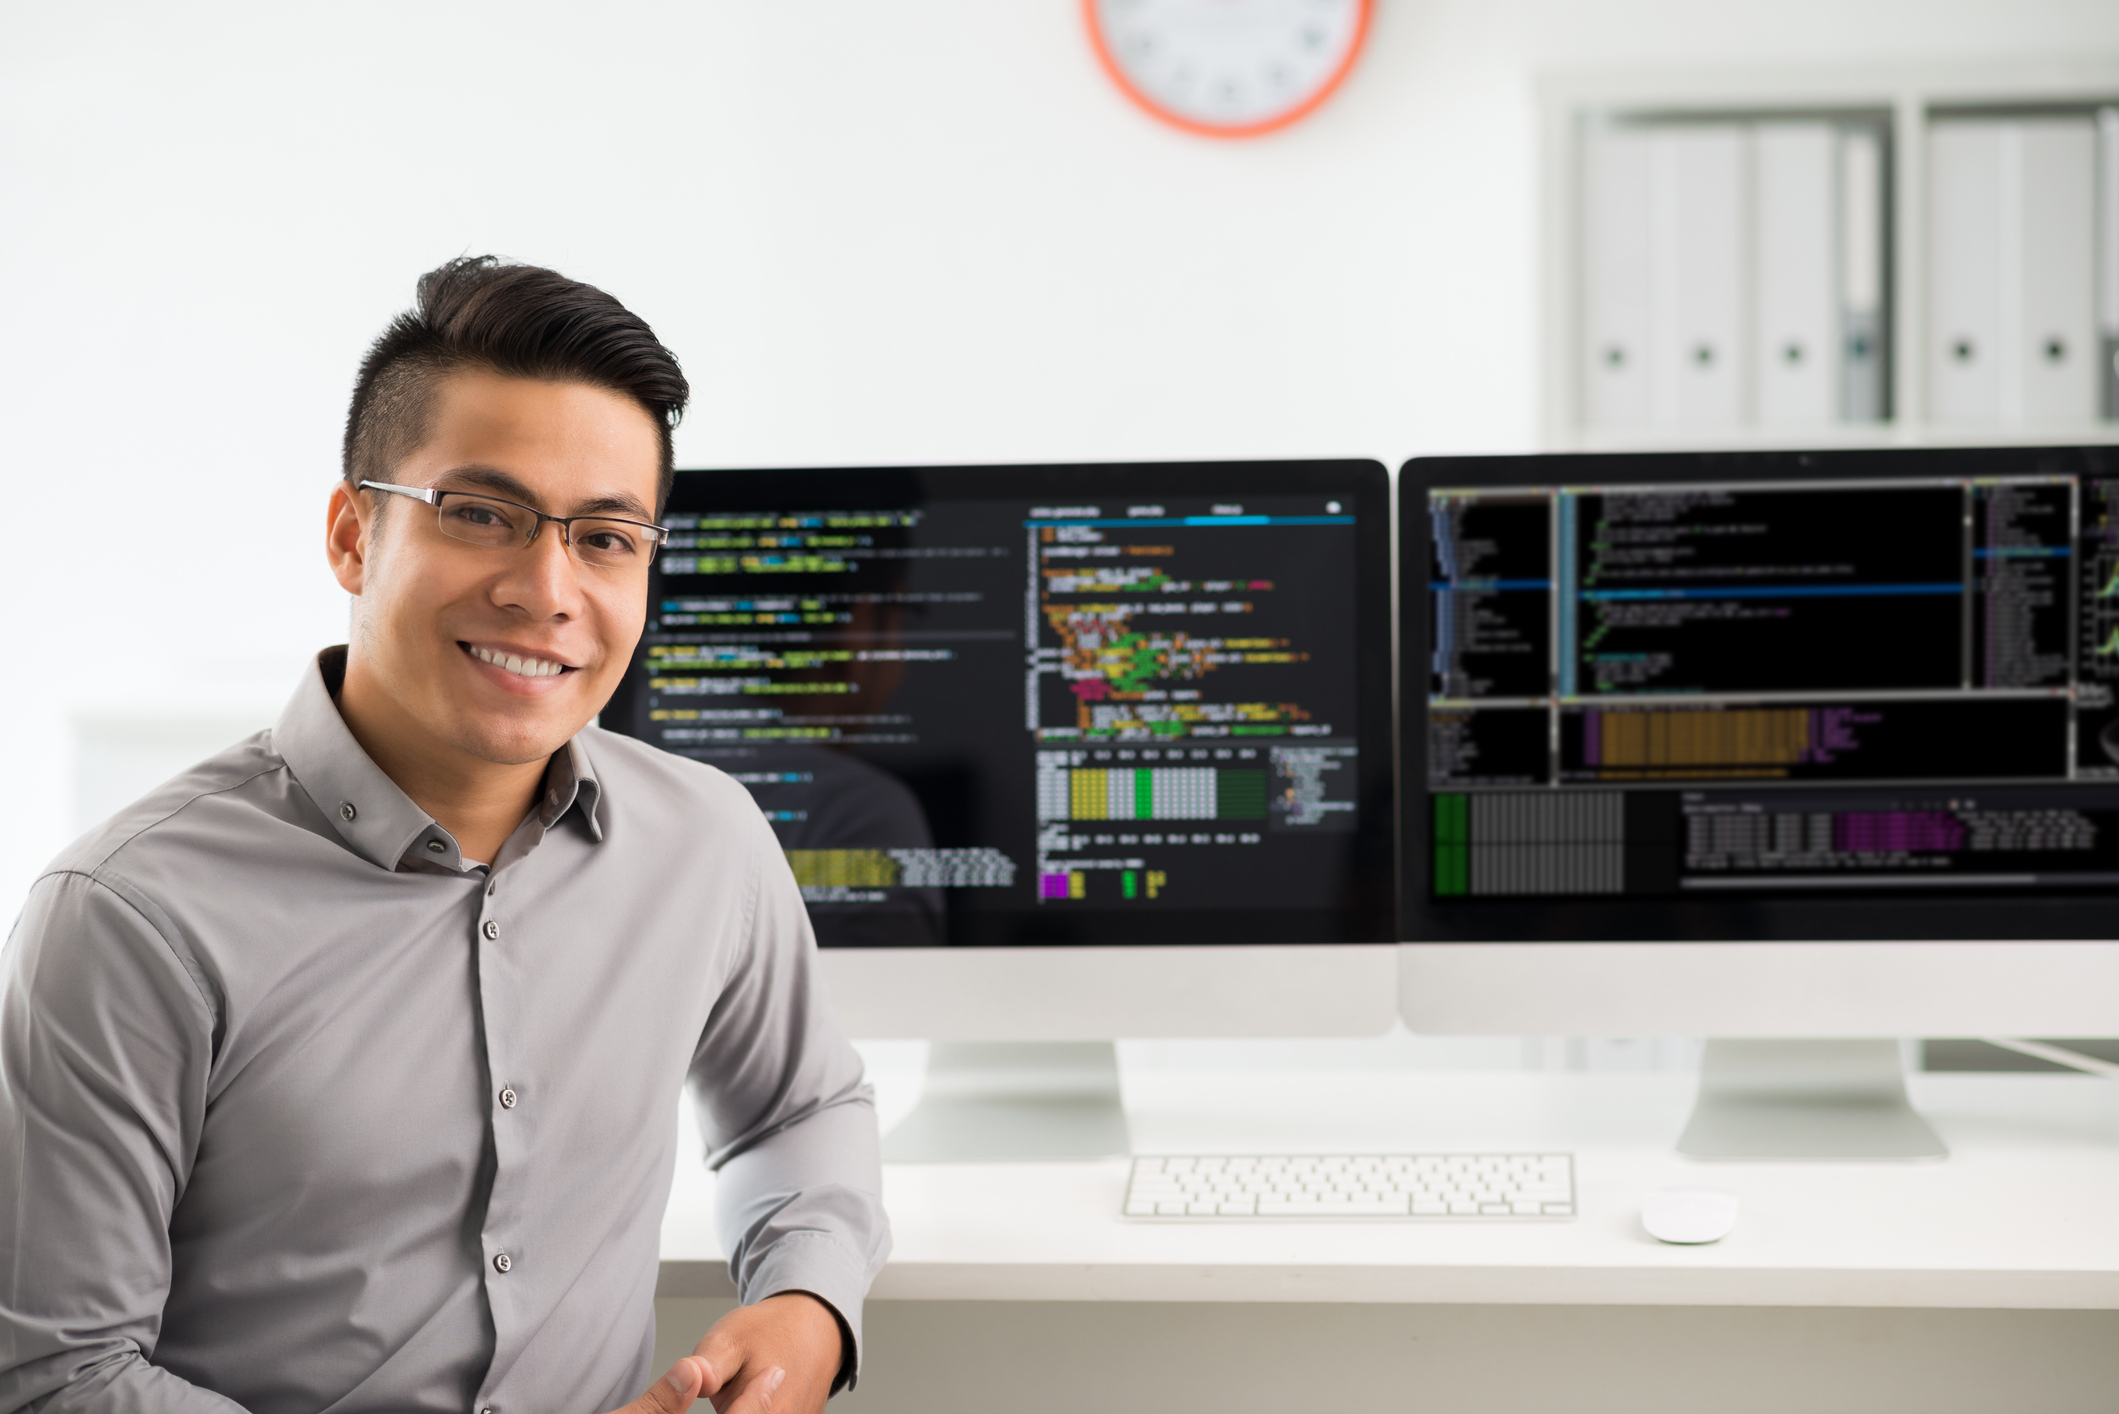 Healthcare IT Leader